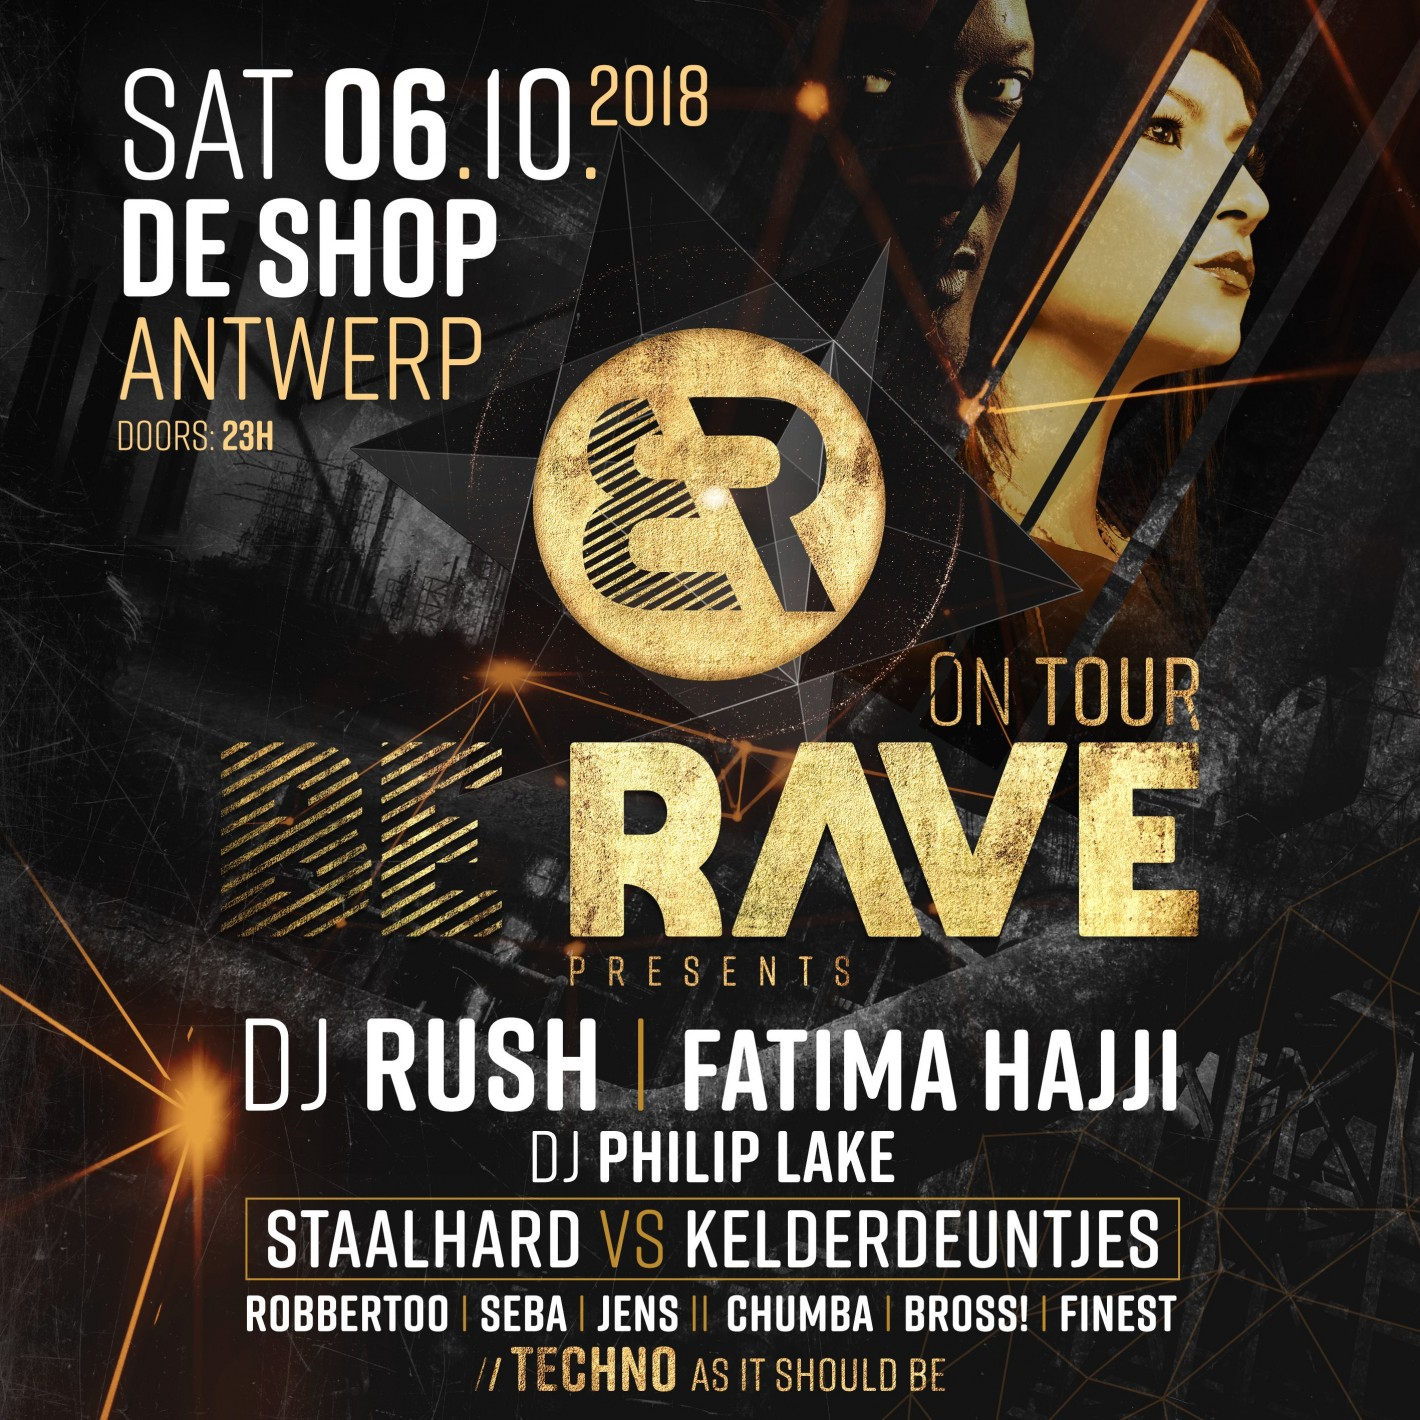 Be Rave presents Dj Rush and Fatima Hajji